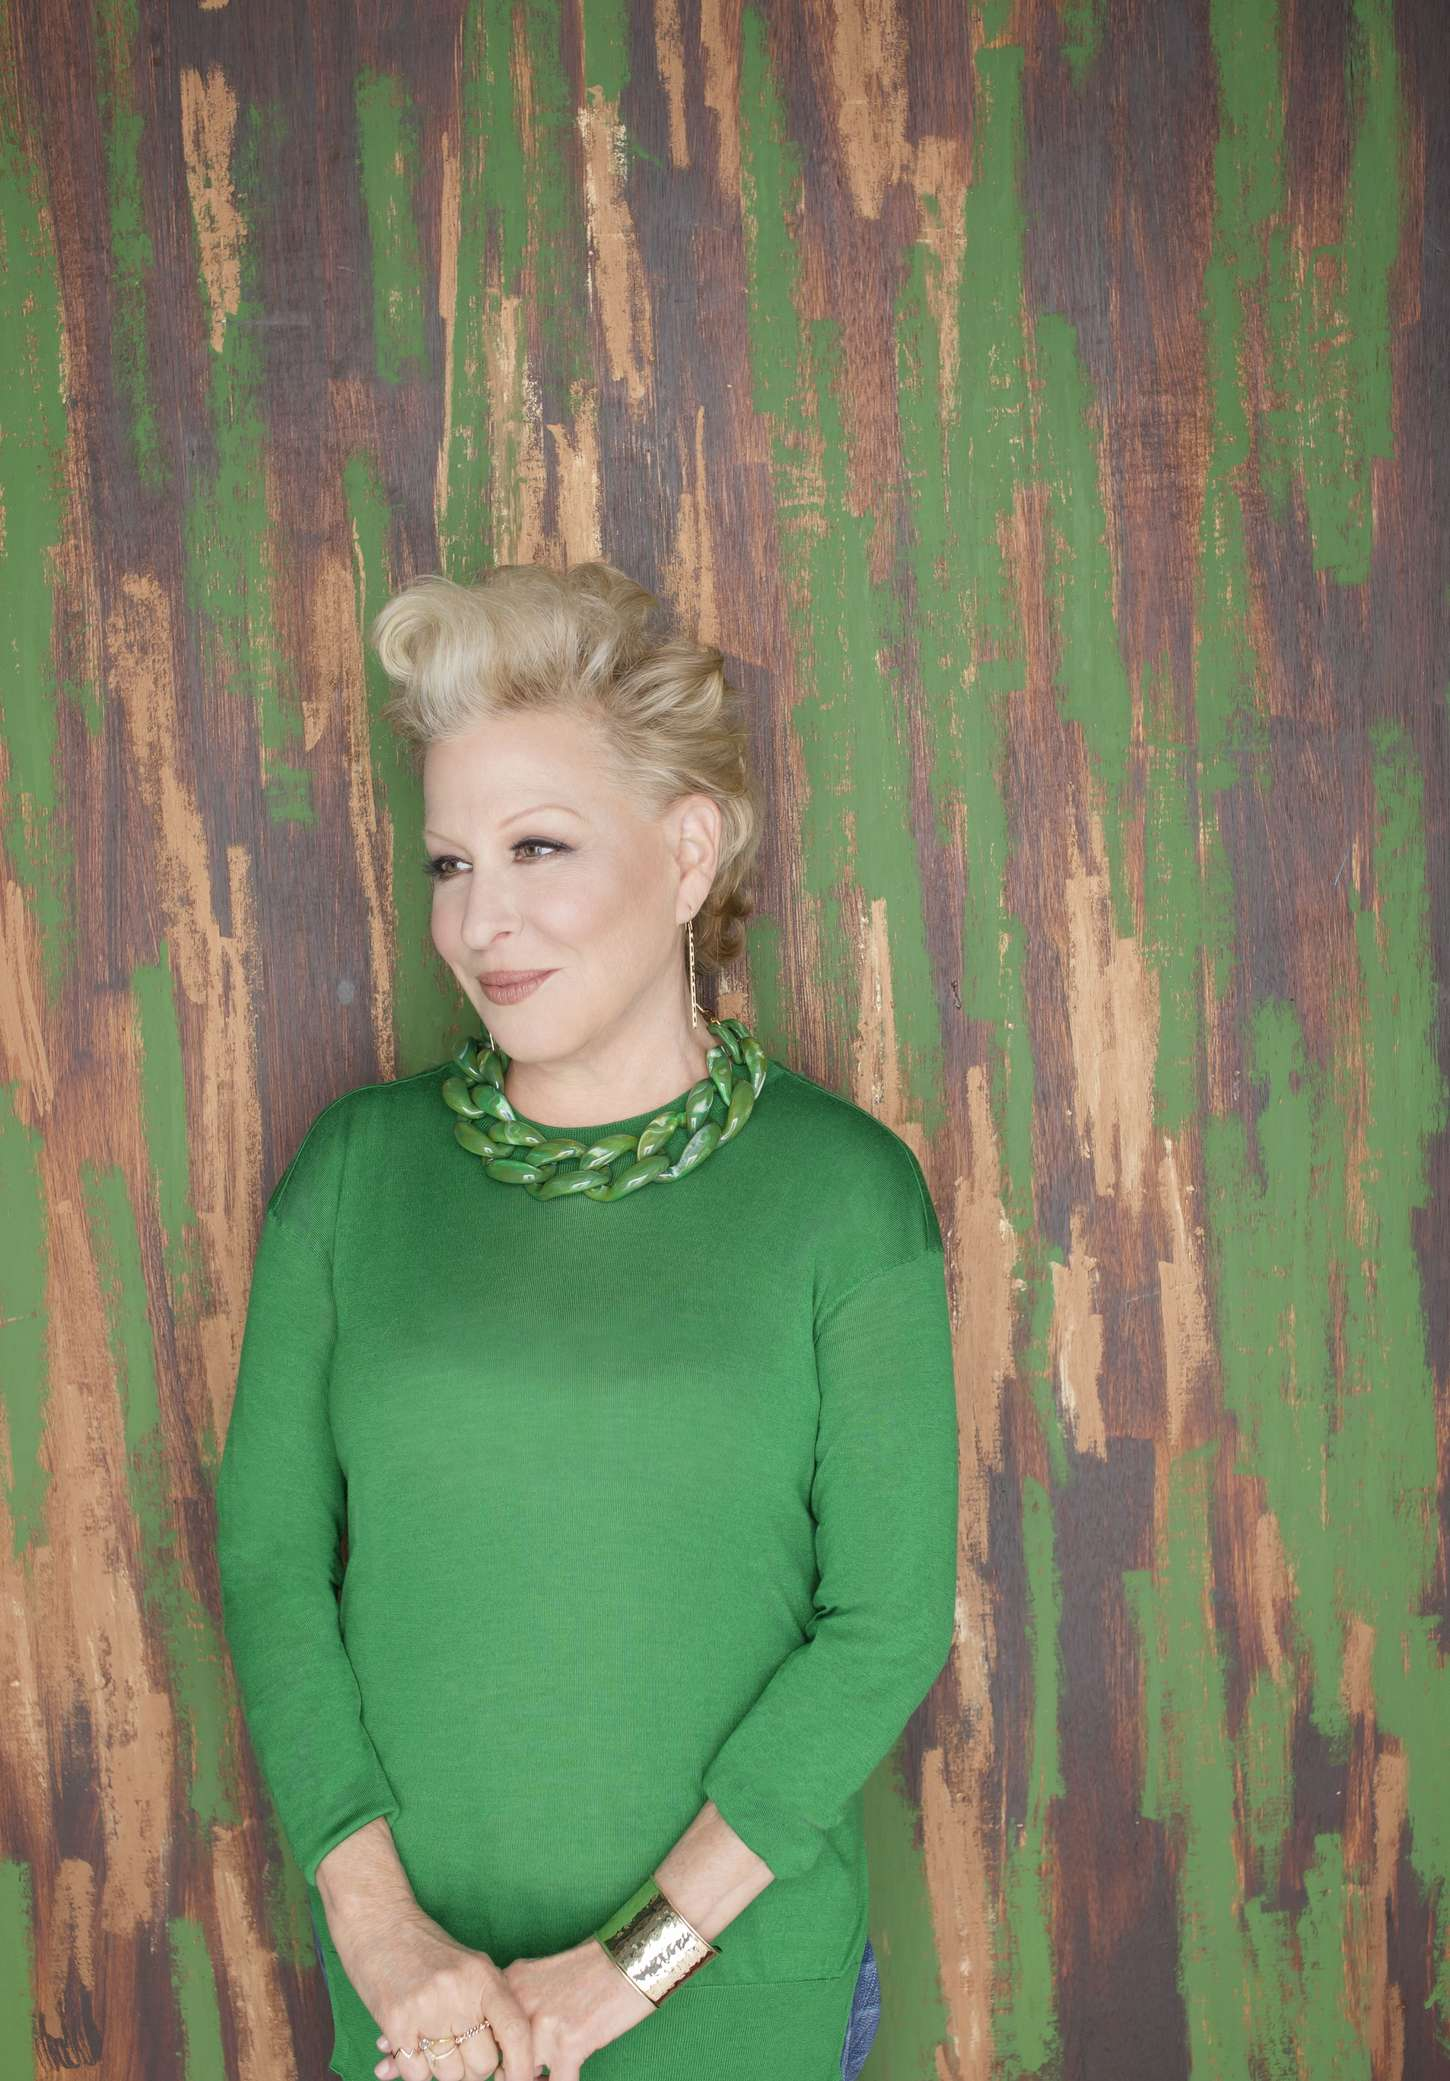 Bette Midler 2014 : Bette Midler: Its The Girls Album Promoshoot 2014 -01